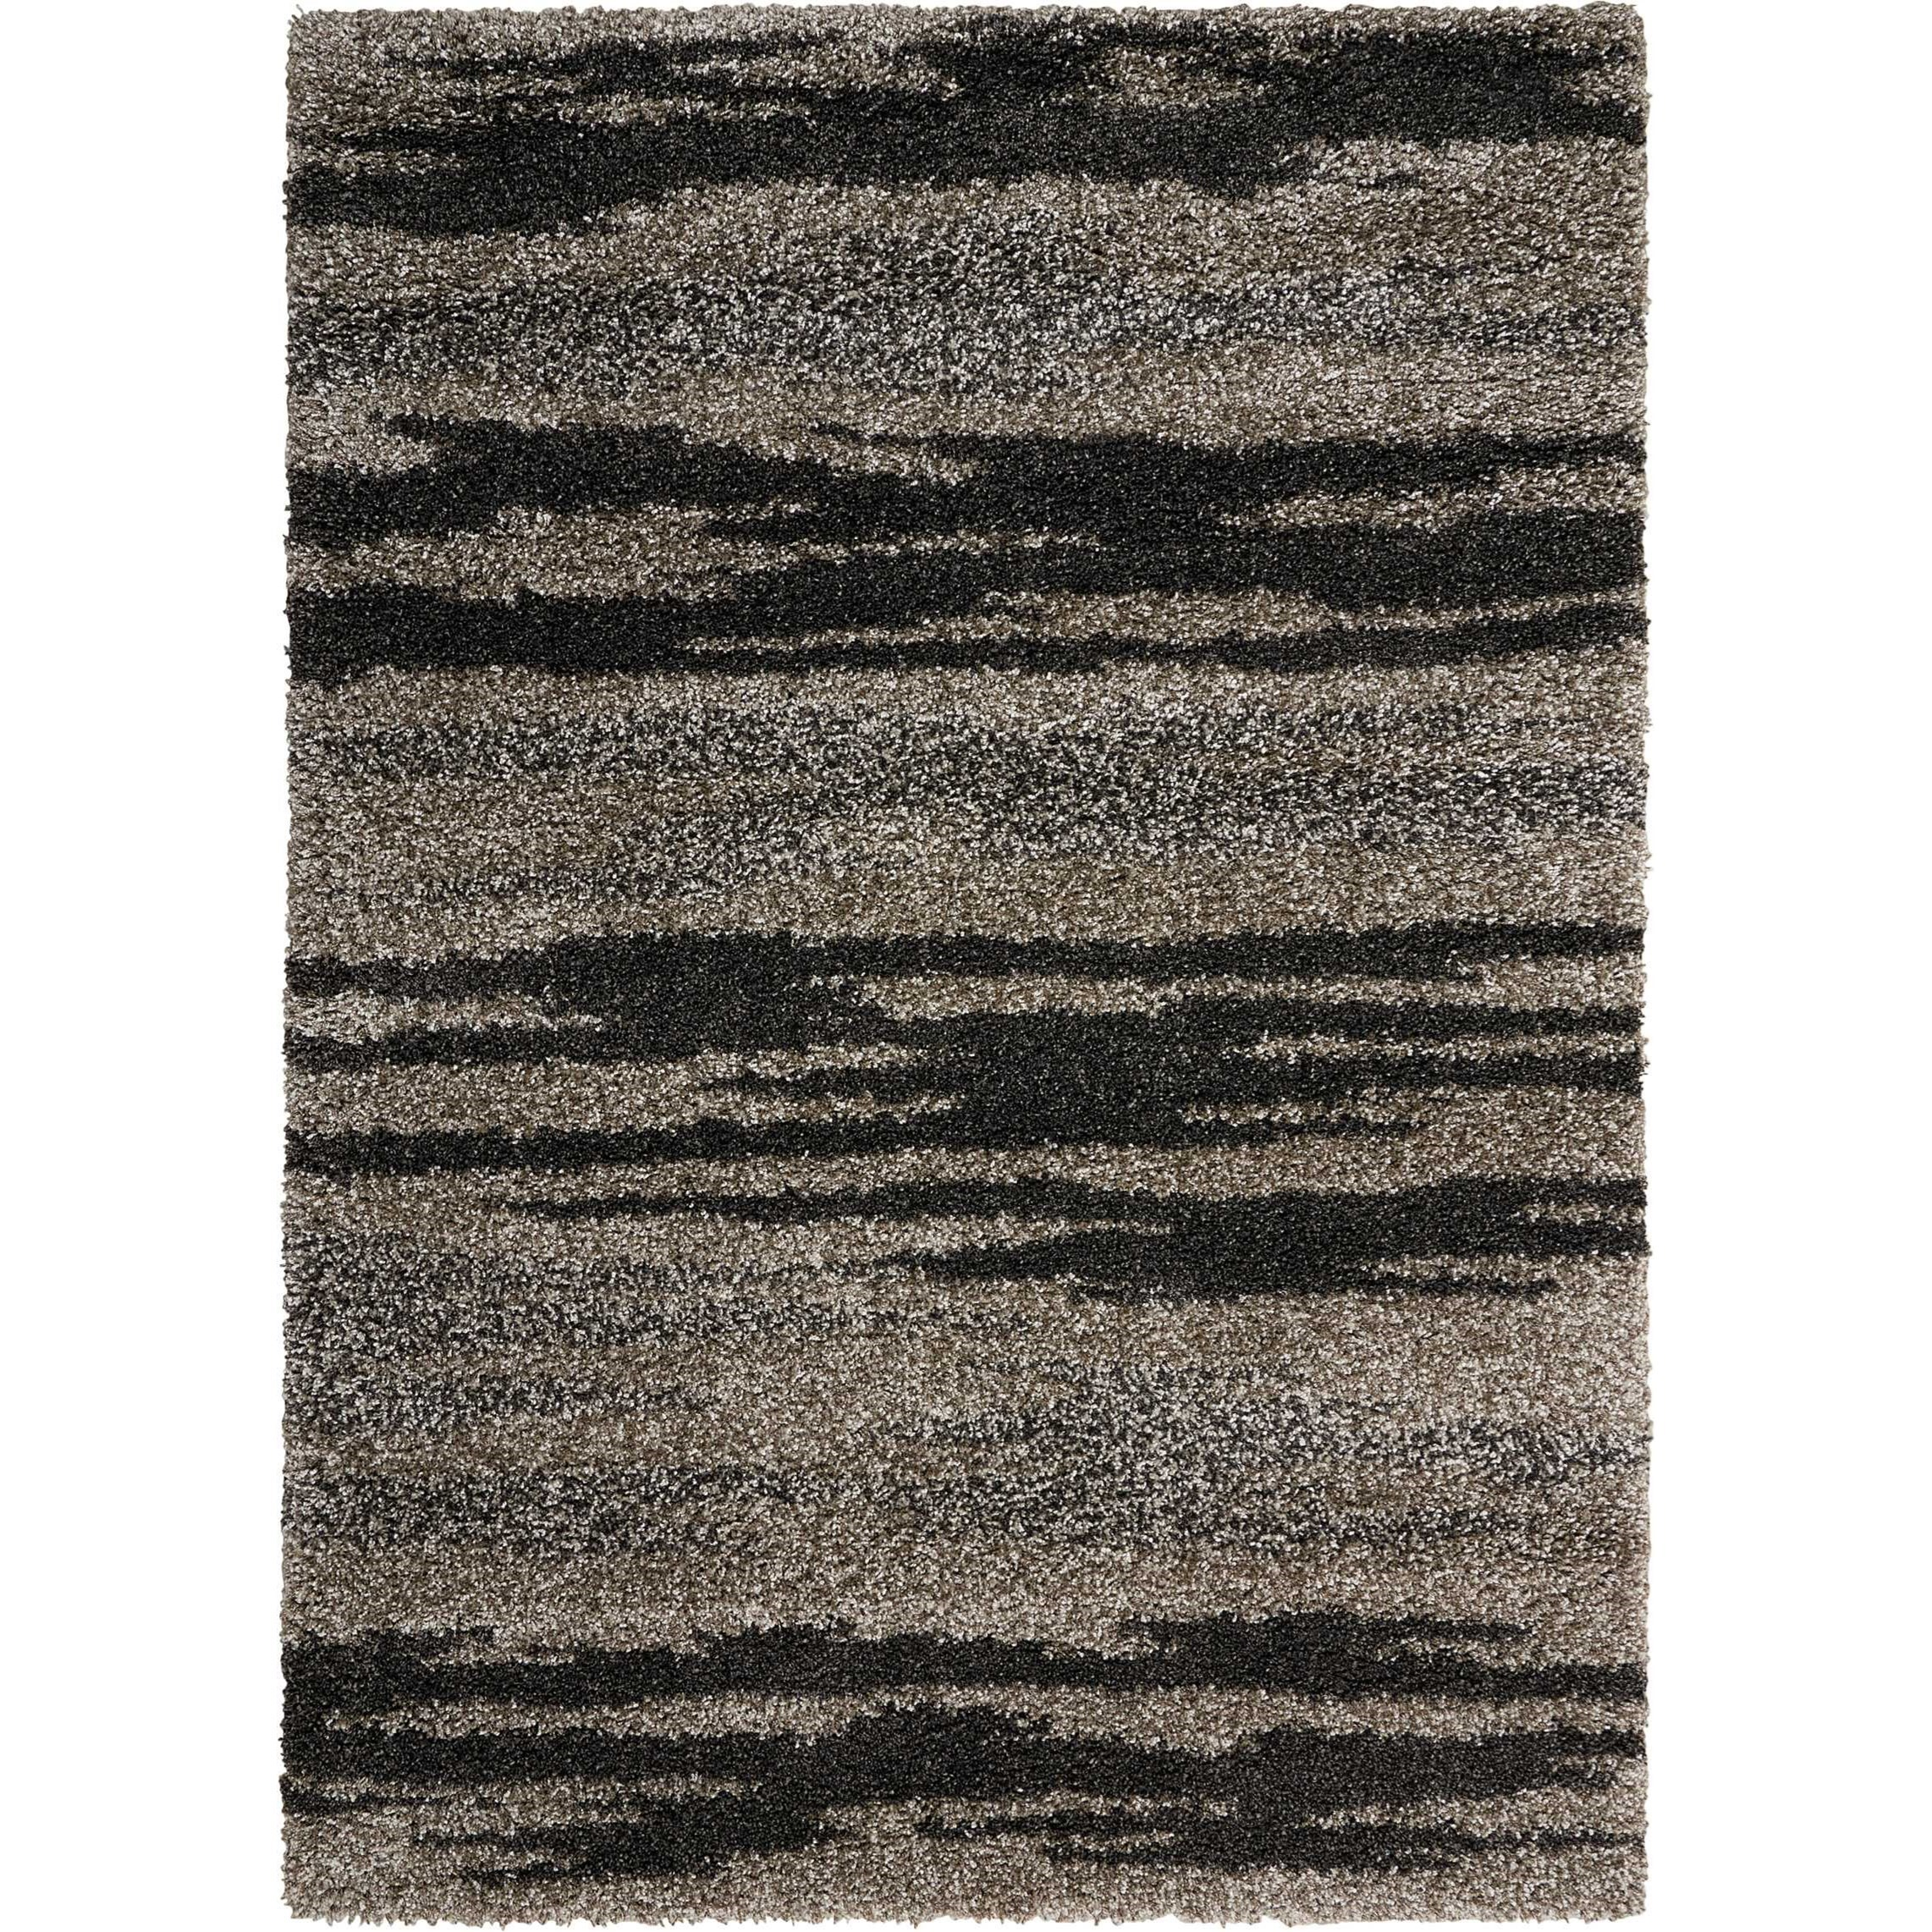 "3'11"" x 5'11"" Marble Rectangle Rug"